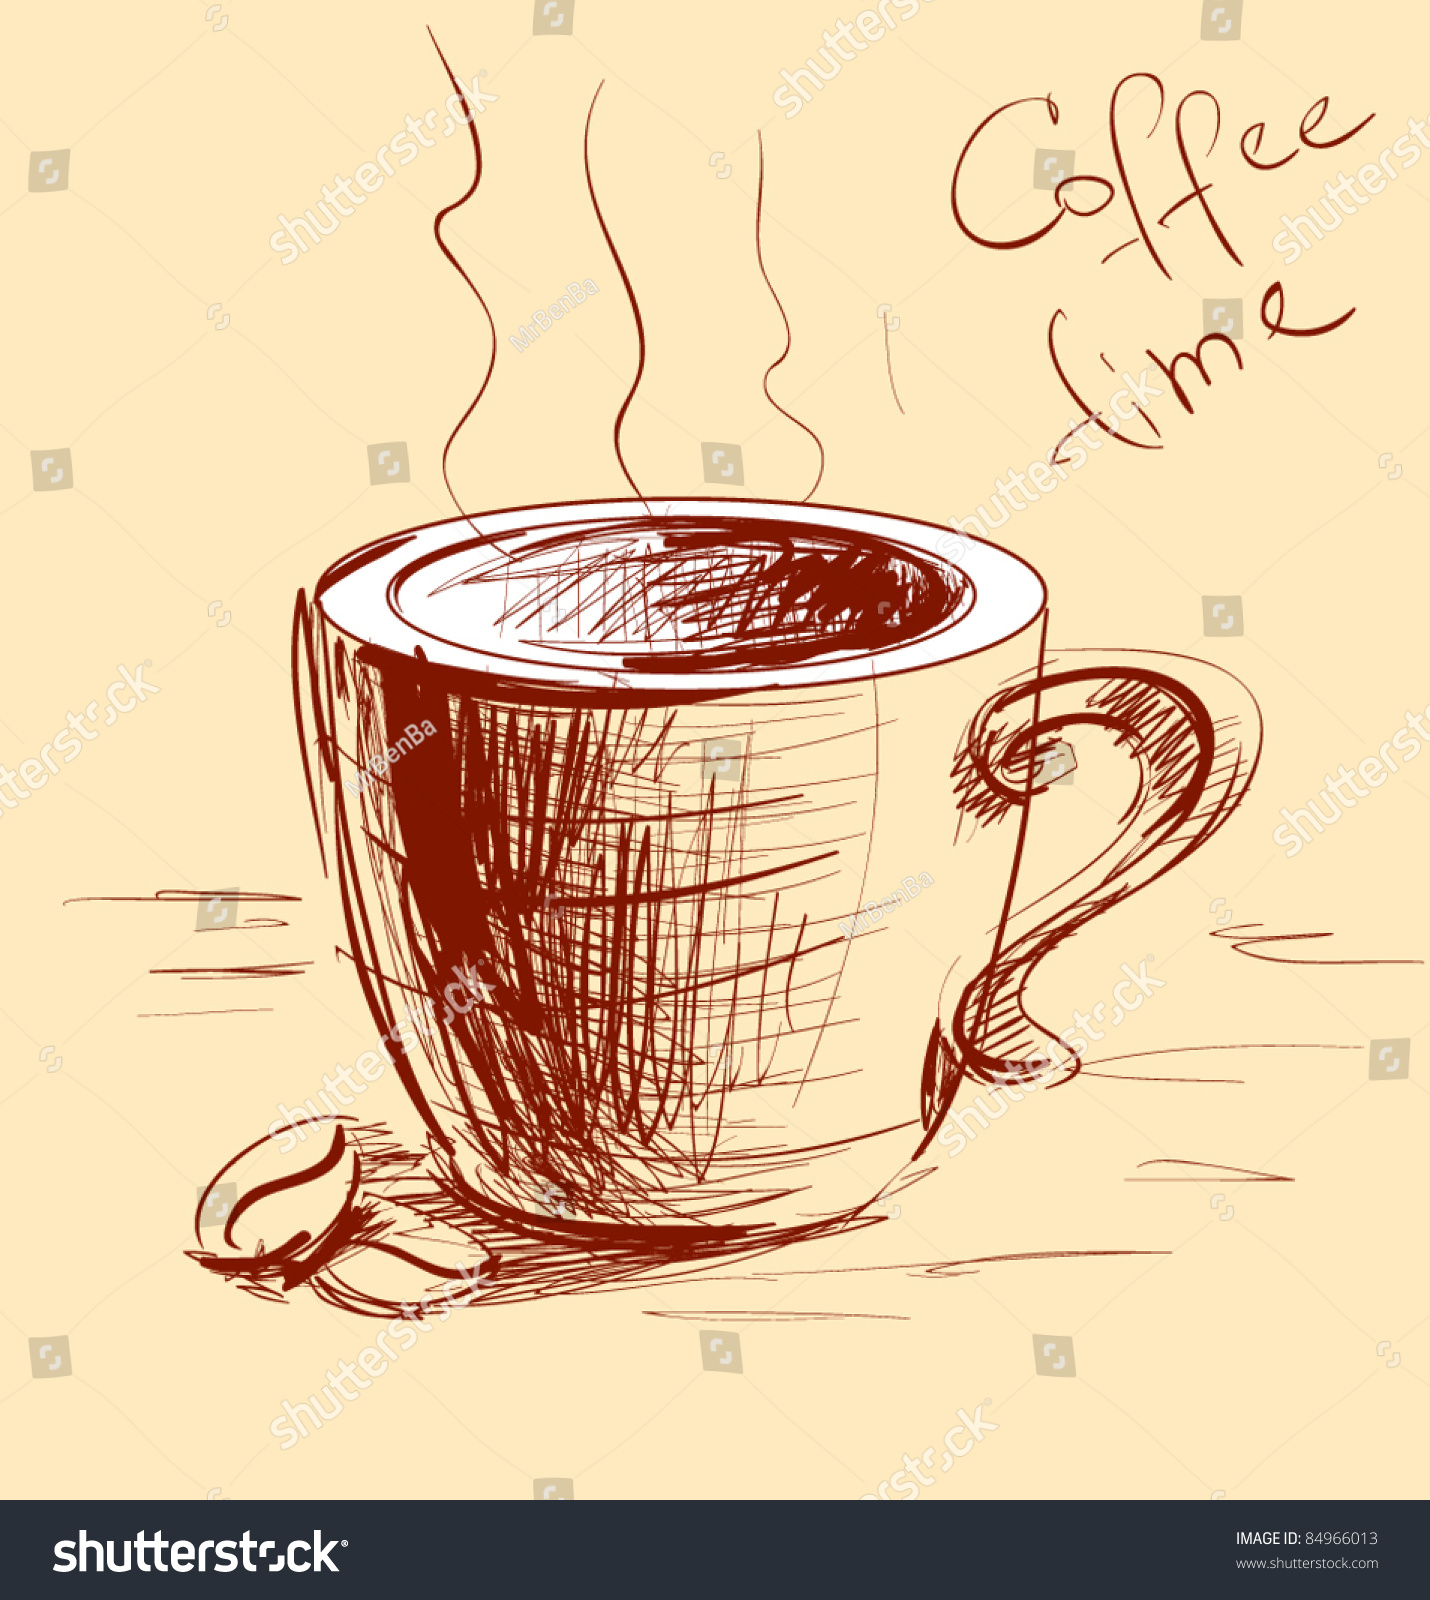 Coffee cup sketch - Coffee Cup Sketch Vector Illustration